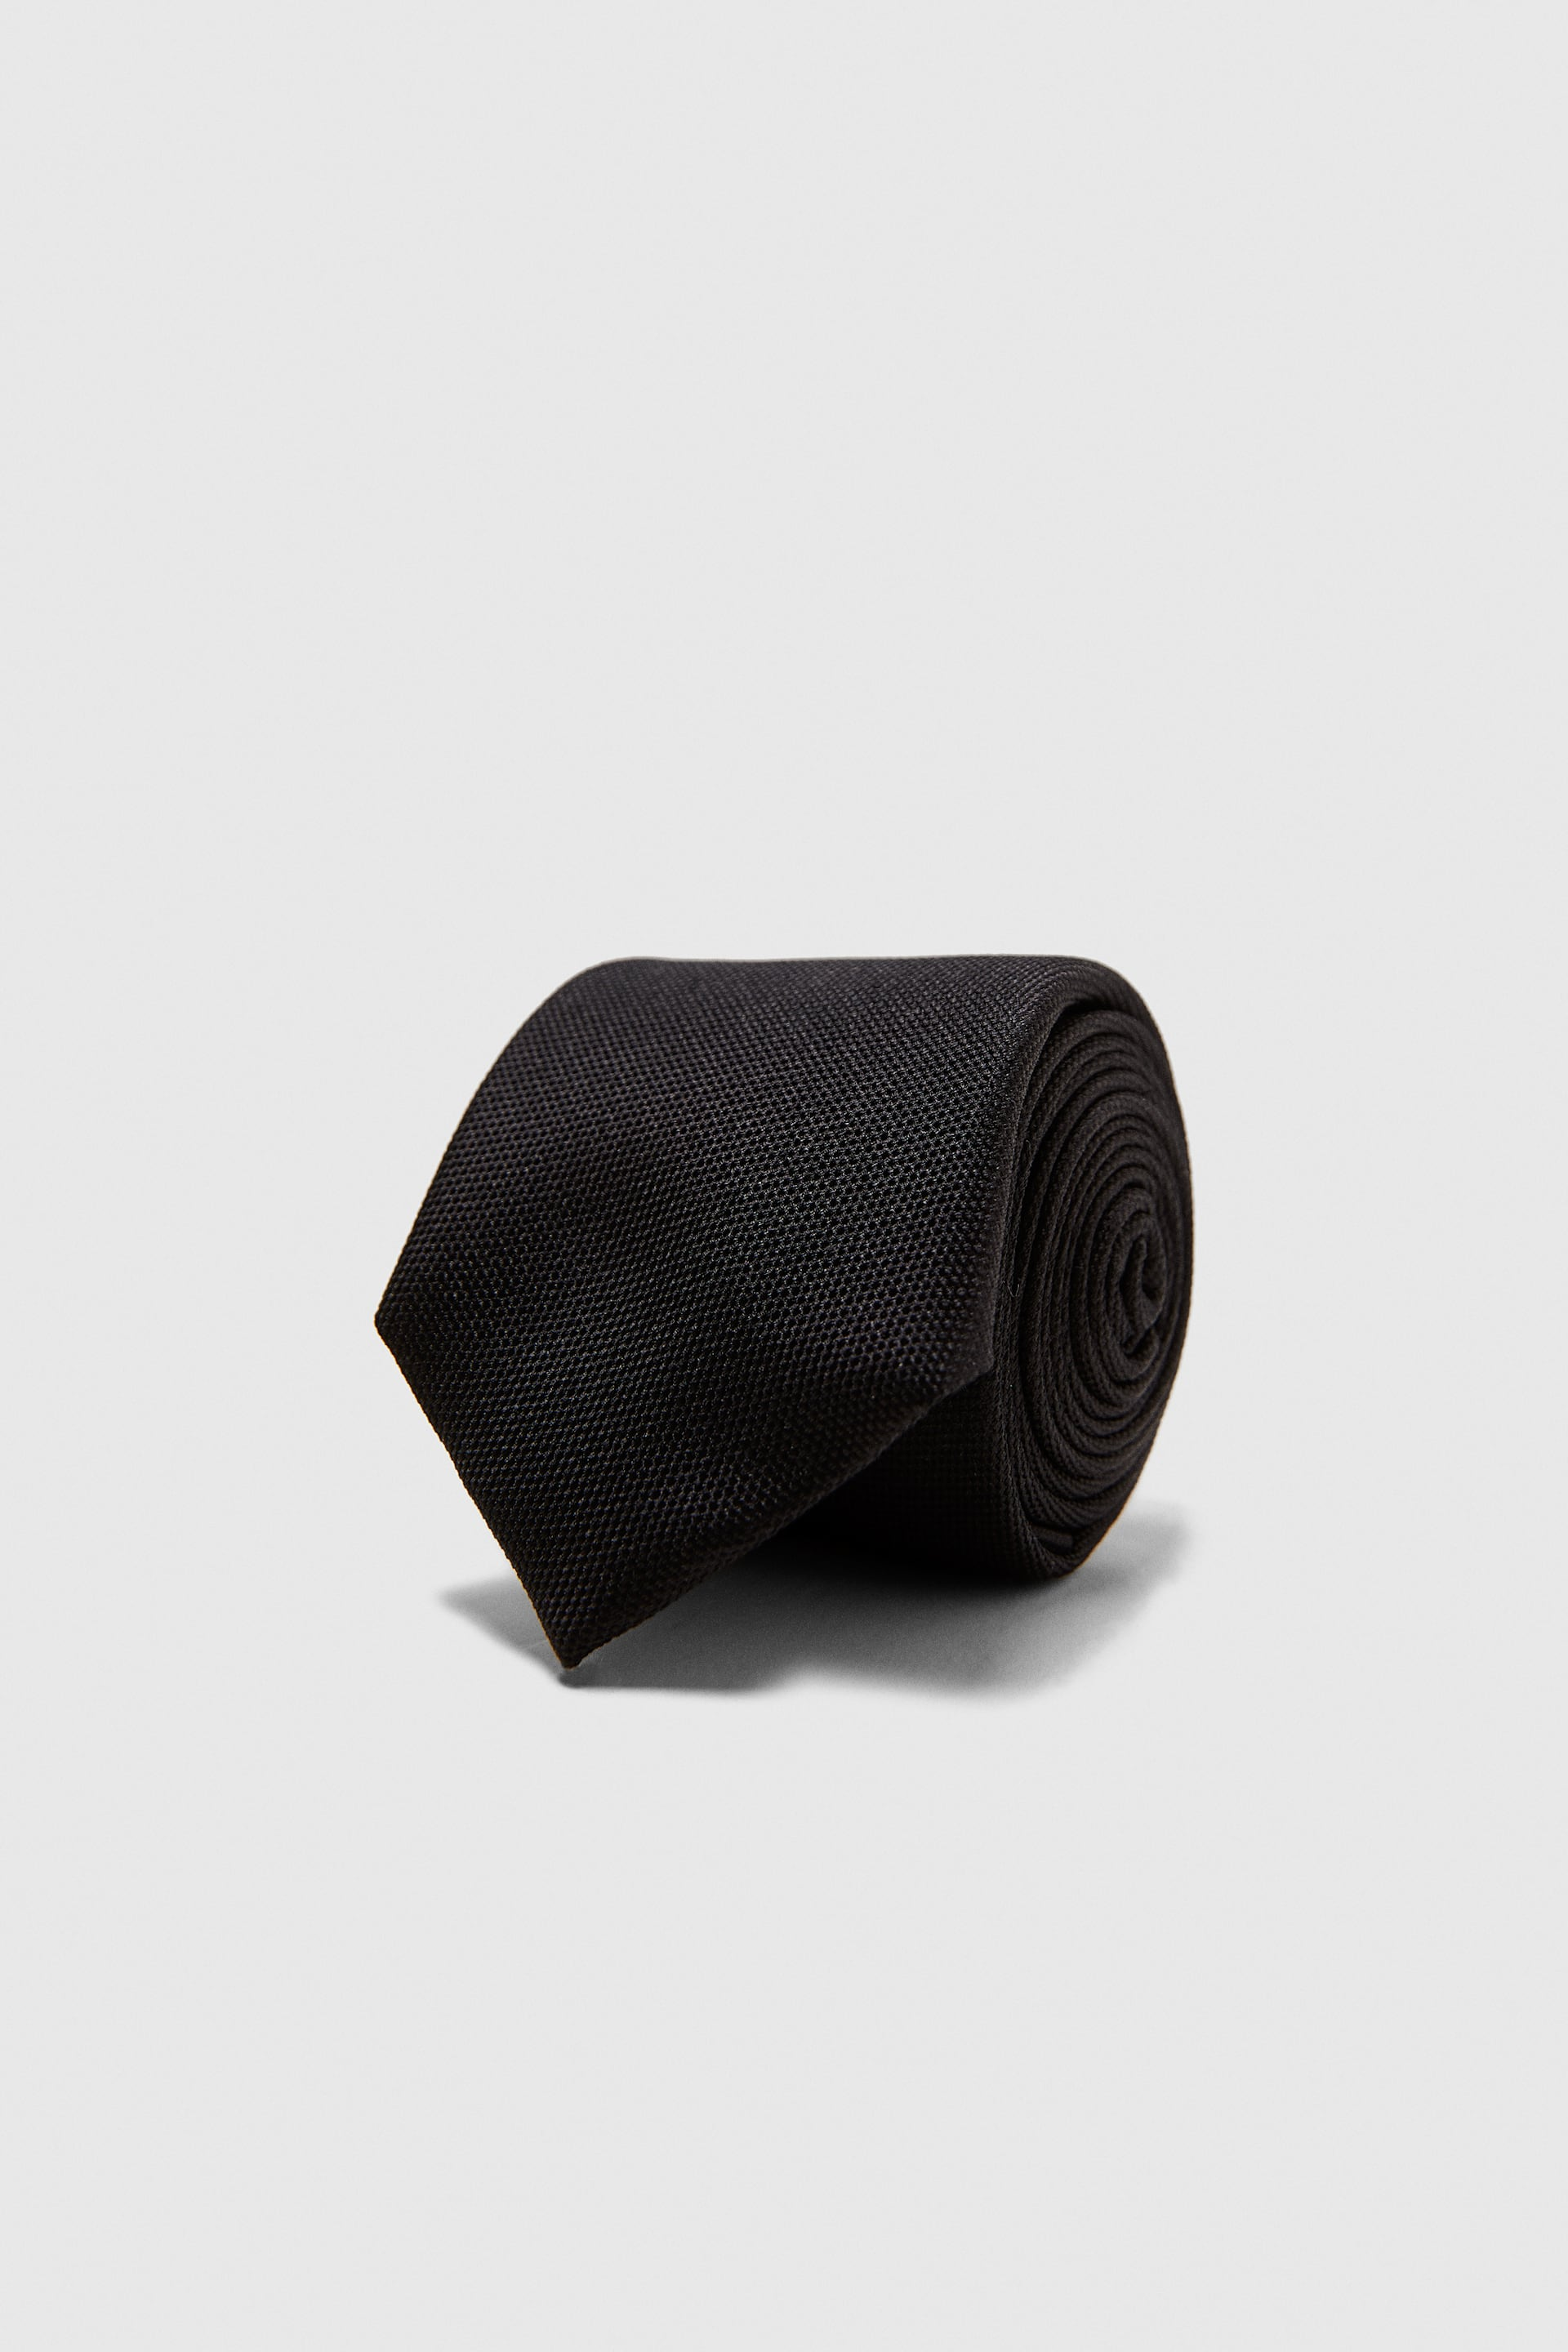 Wide Textured Tie by Zara